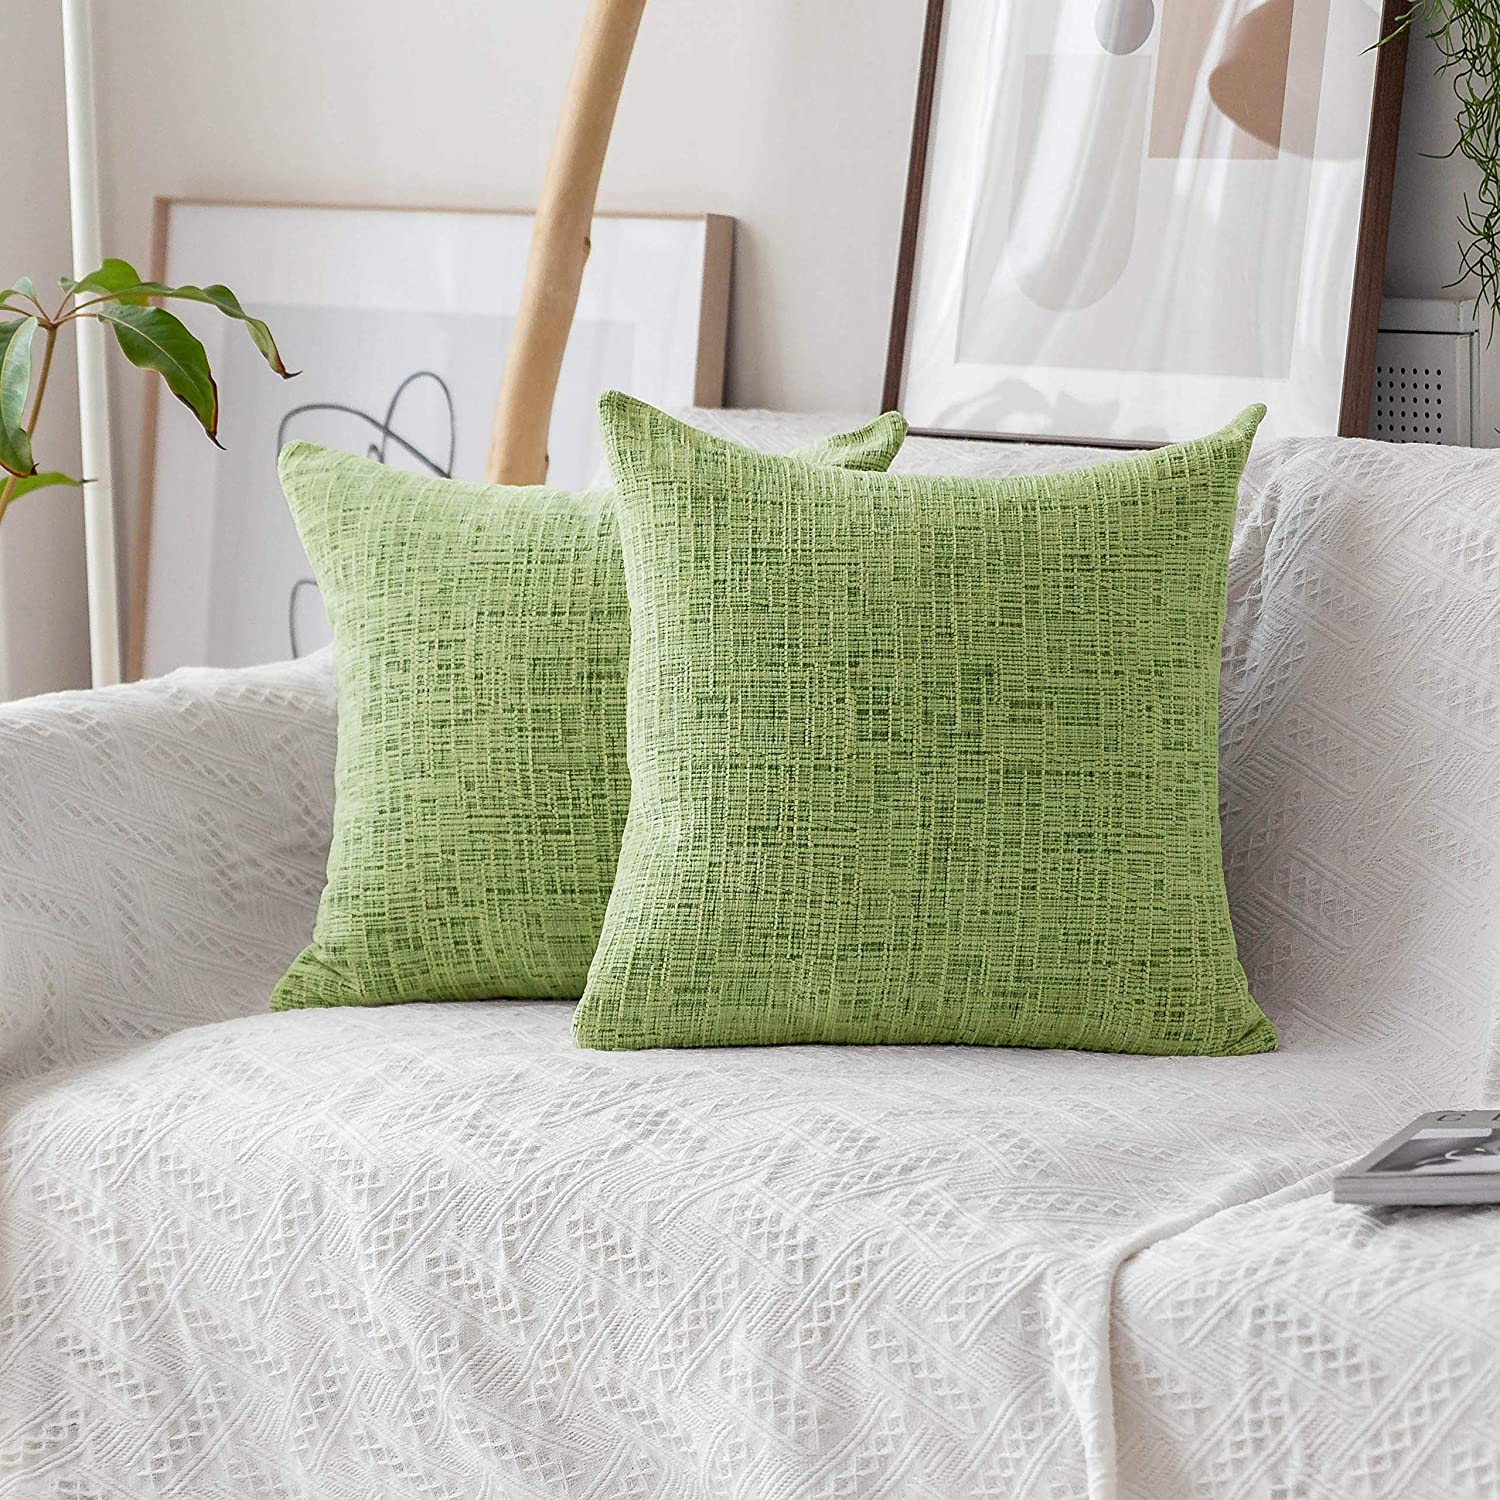 Home Brilliant Large Throw Pillow Covers Chenille Velvet Decorative Cushion Cover for Patio, 66x66cm (26inch) Set of 2, Apple Green